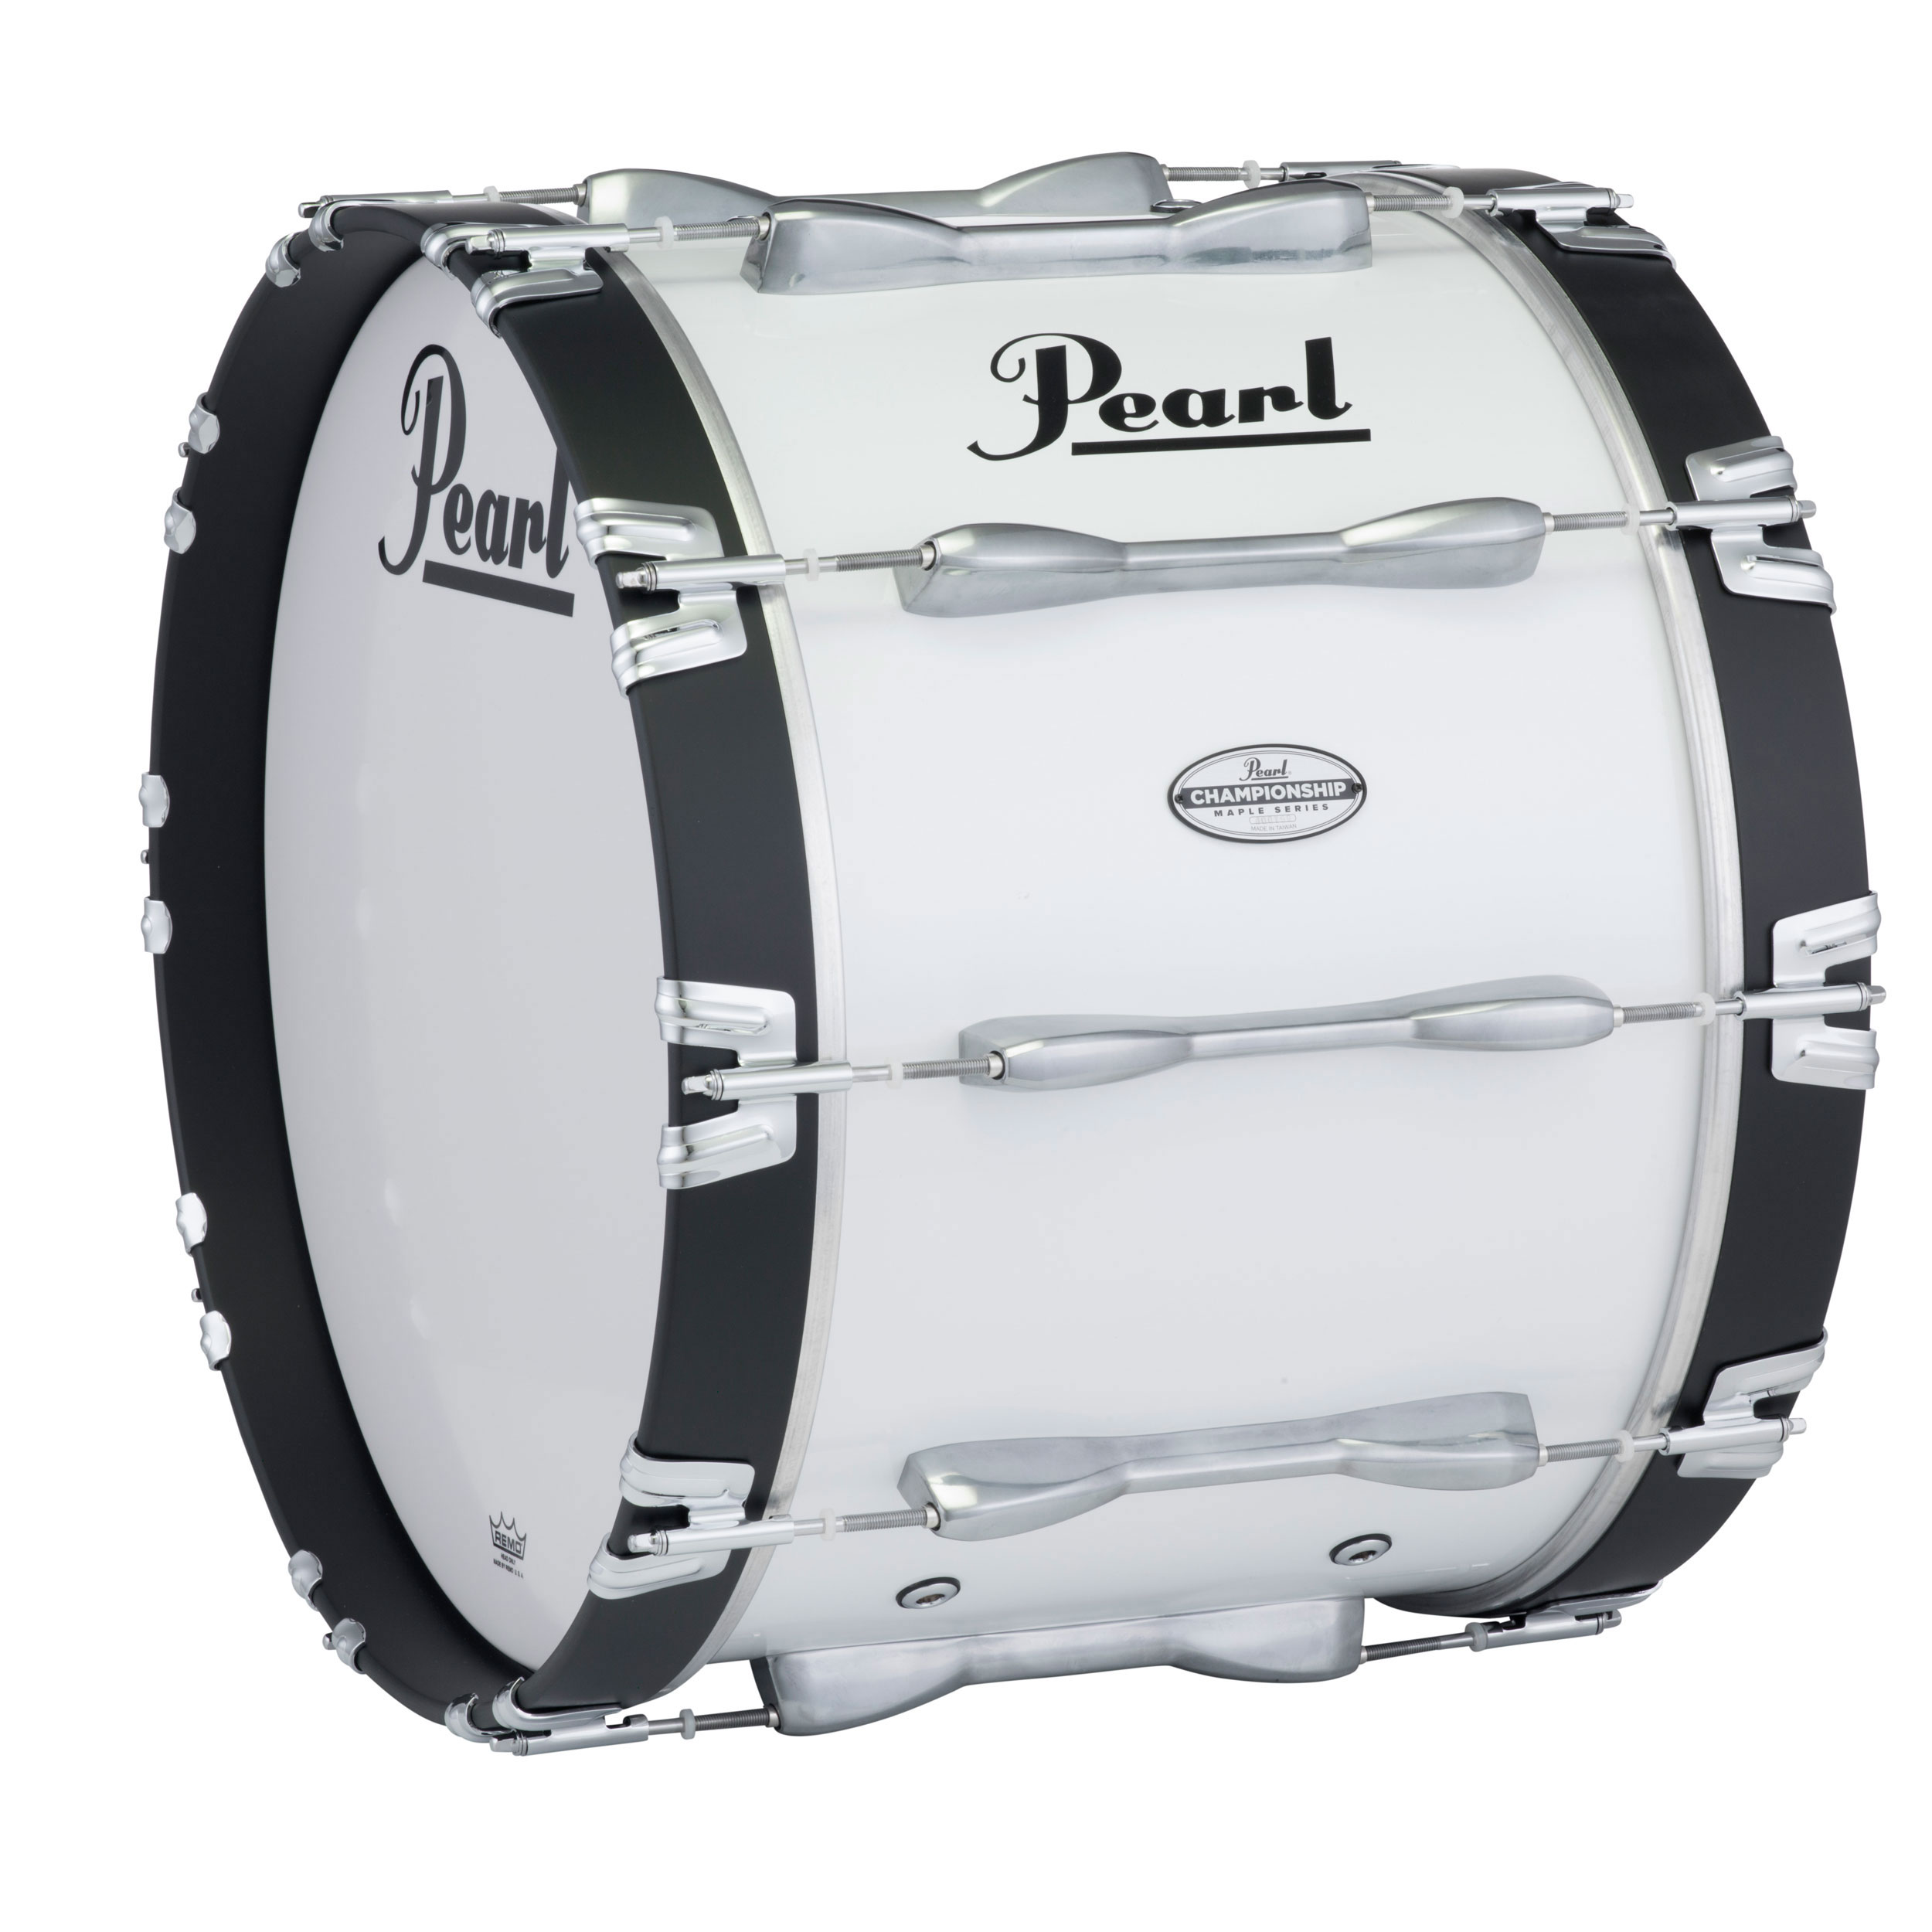 "Pearl 24"" PBDM Championship Maple Marching Bass Drum in Wrap Finish"